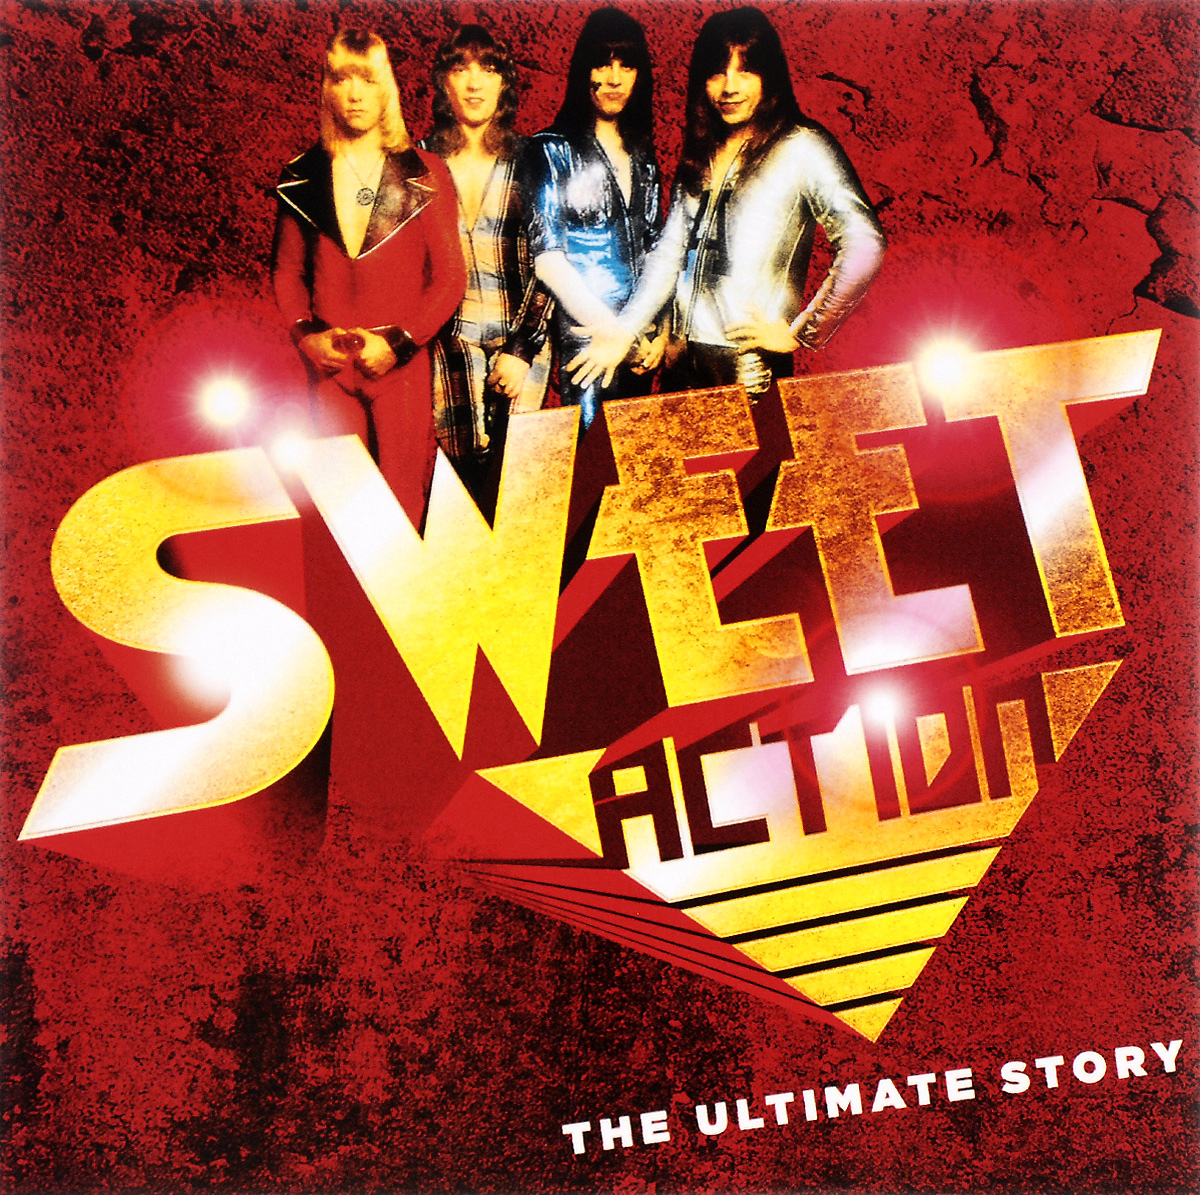 Sweet Sweet. Action The Ultimate Story (2 CD) элейн пэйдж elaine paige the ultimate collection 2 cd